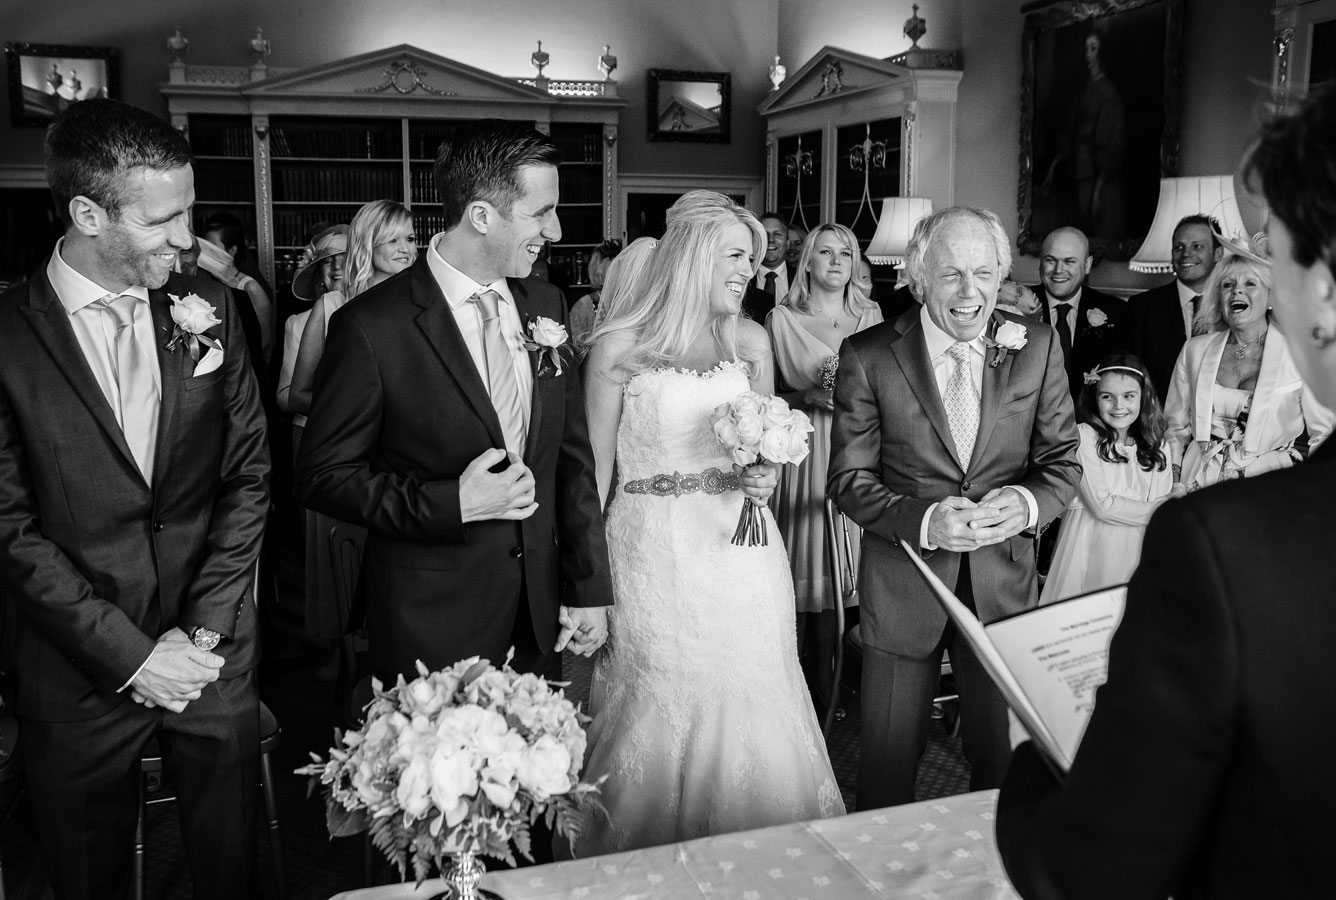 Brocket Hall Wedding ceremony image